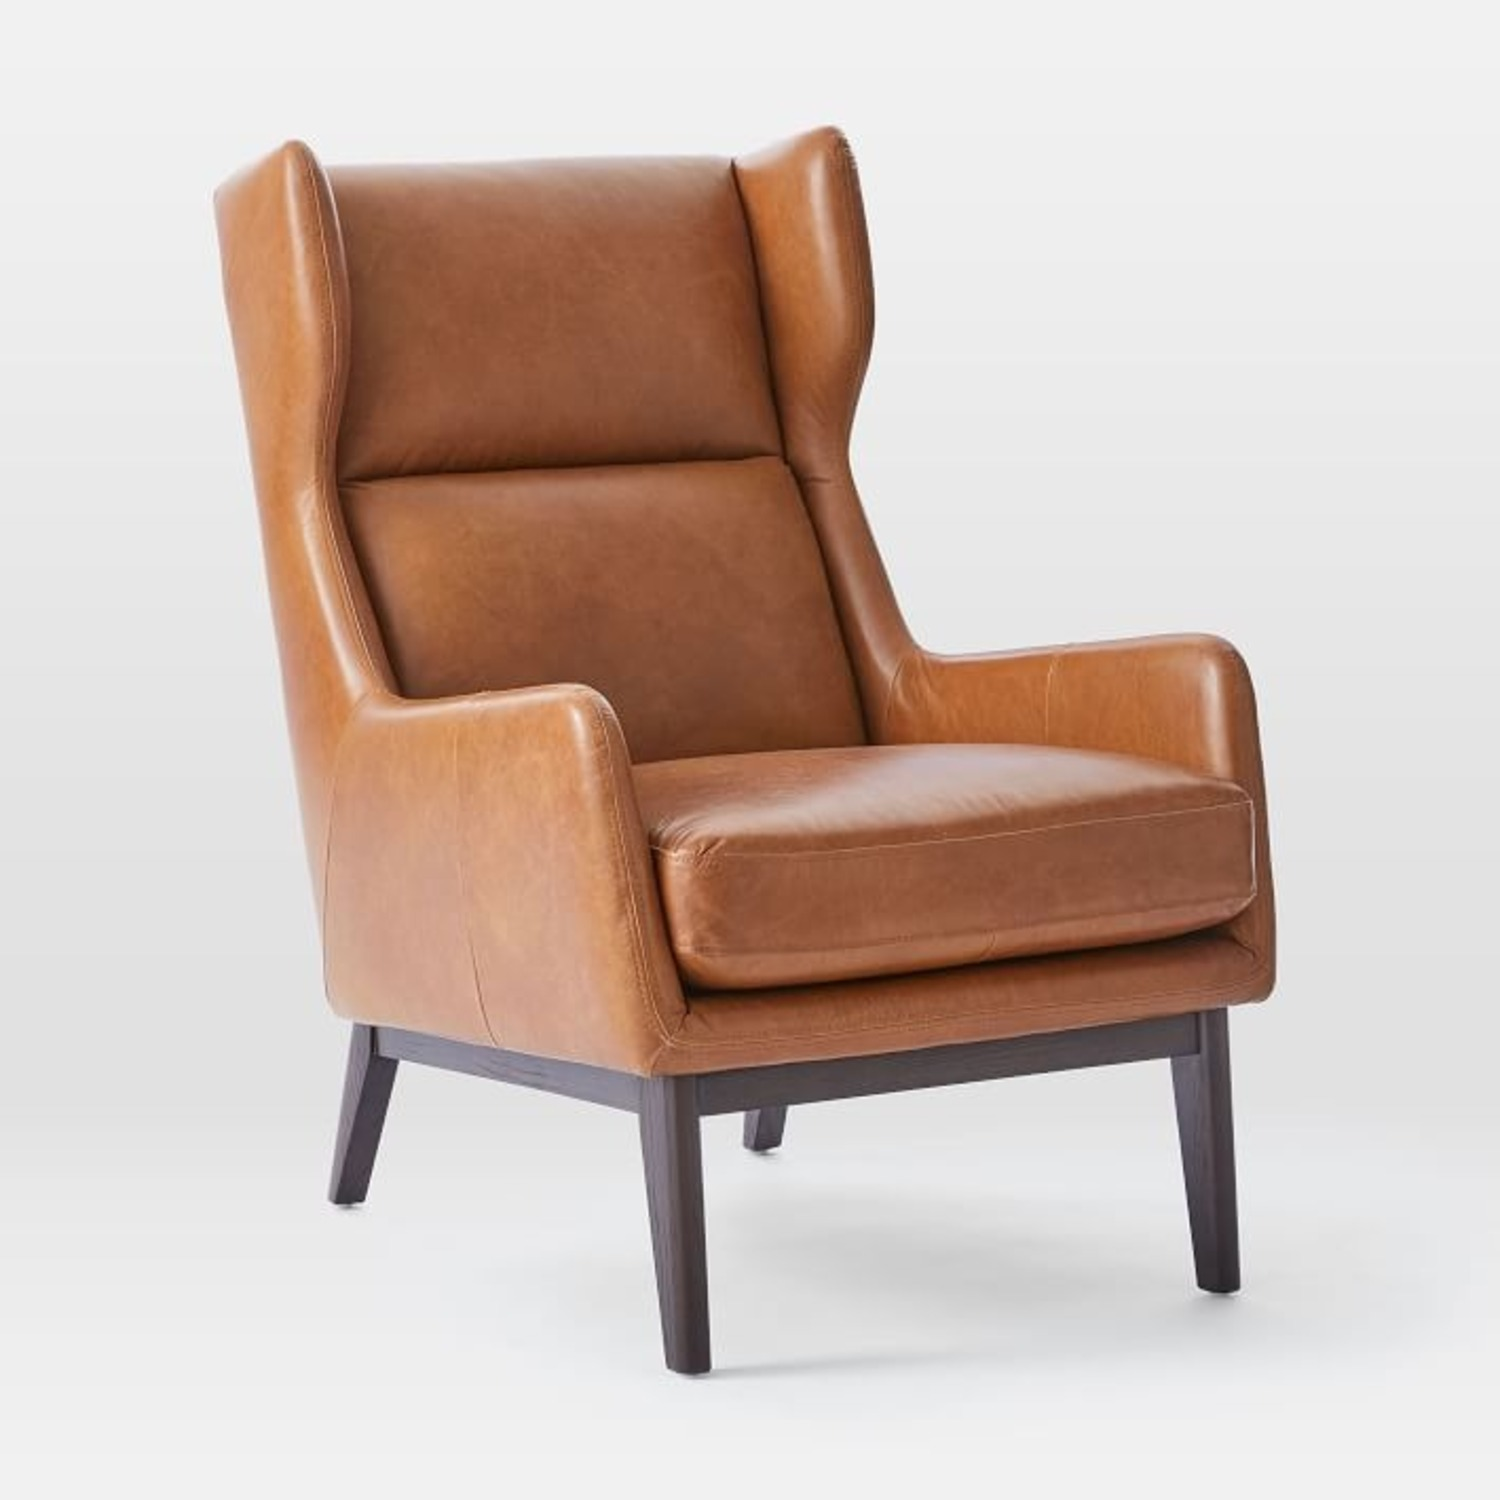 West Elm Ryder Leather Chair - image-1